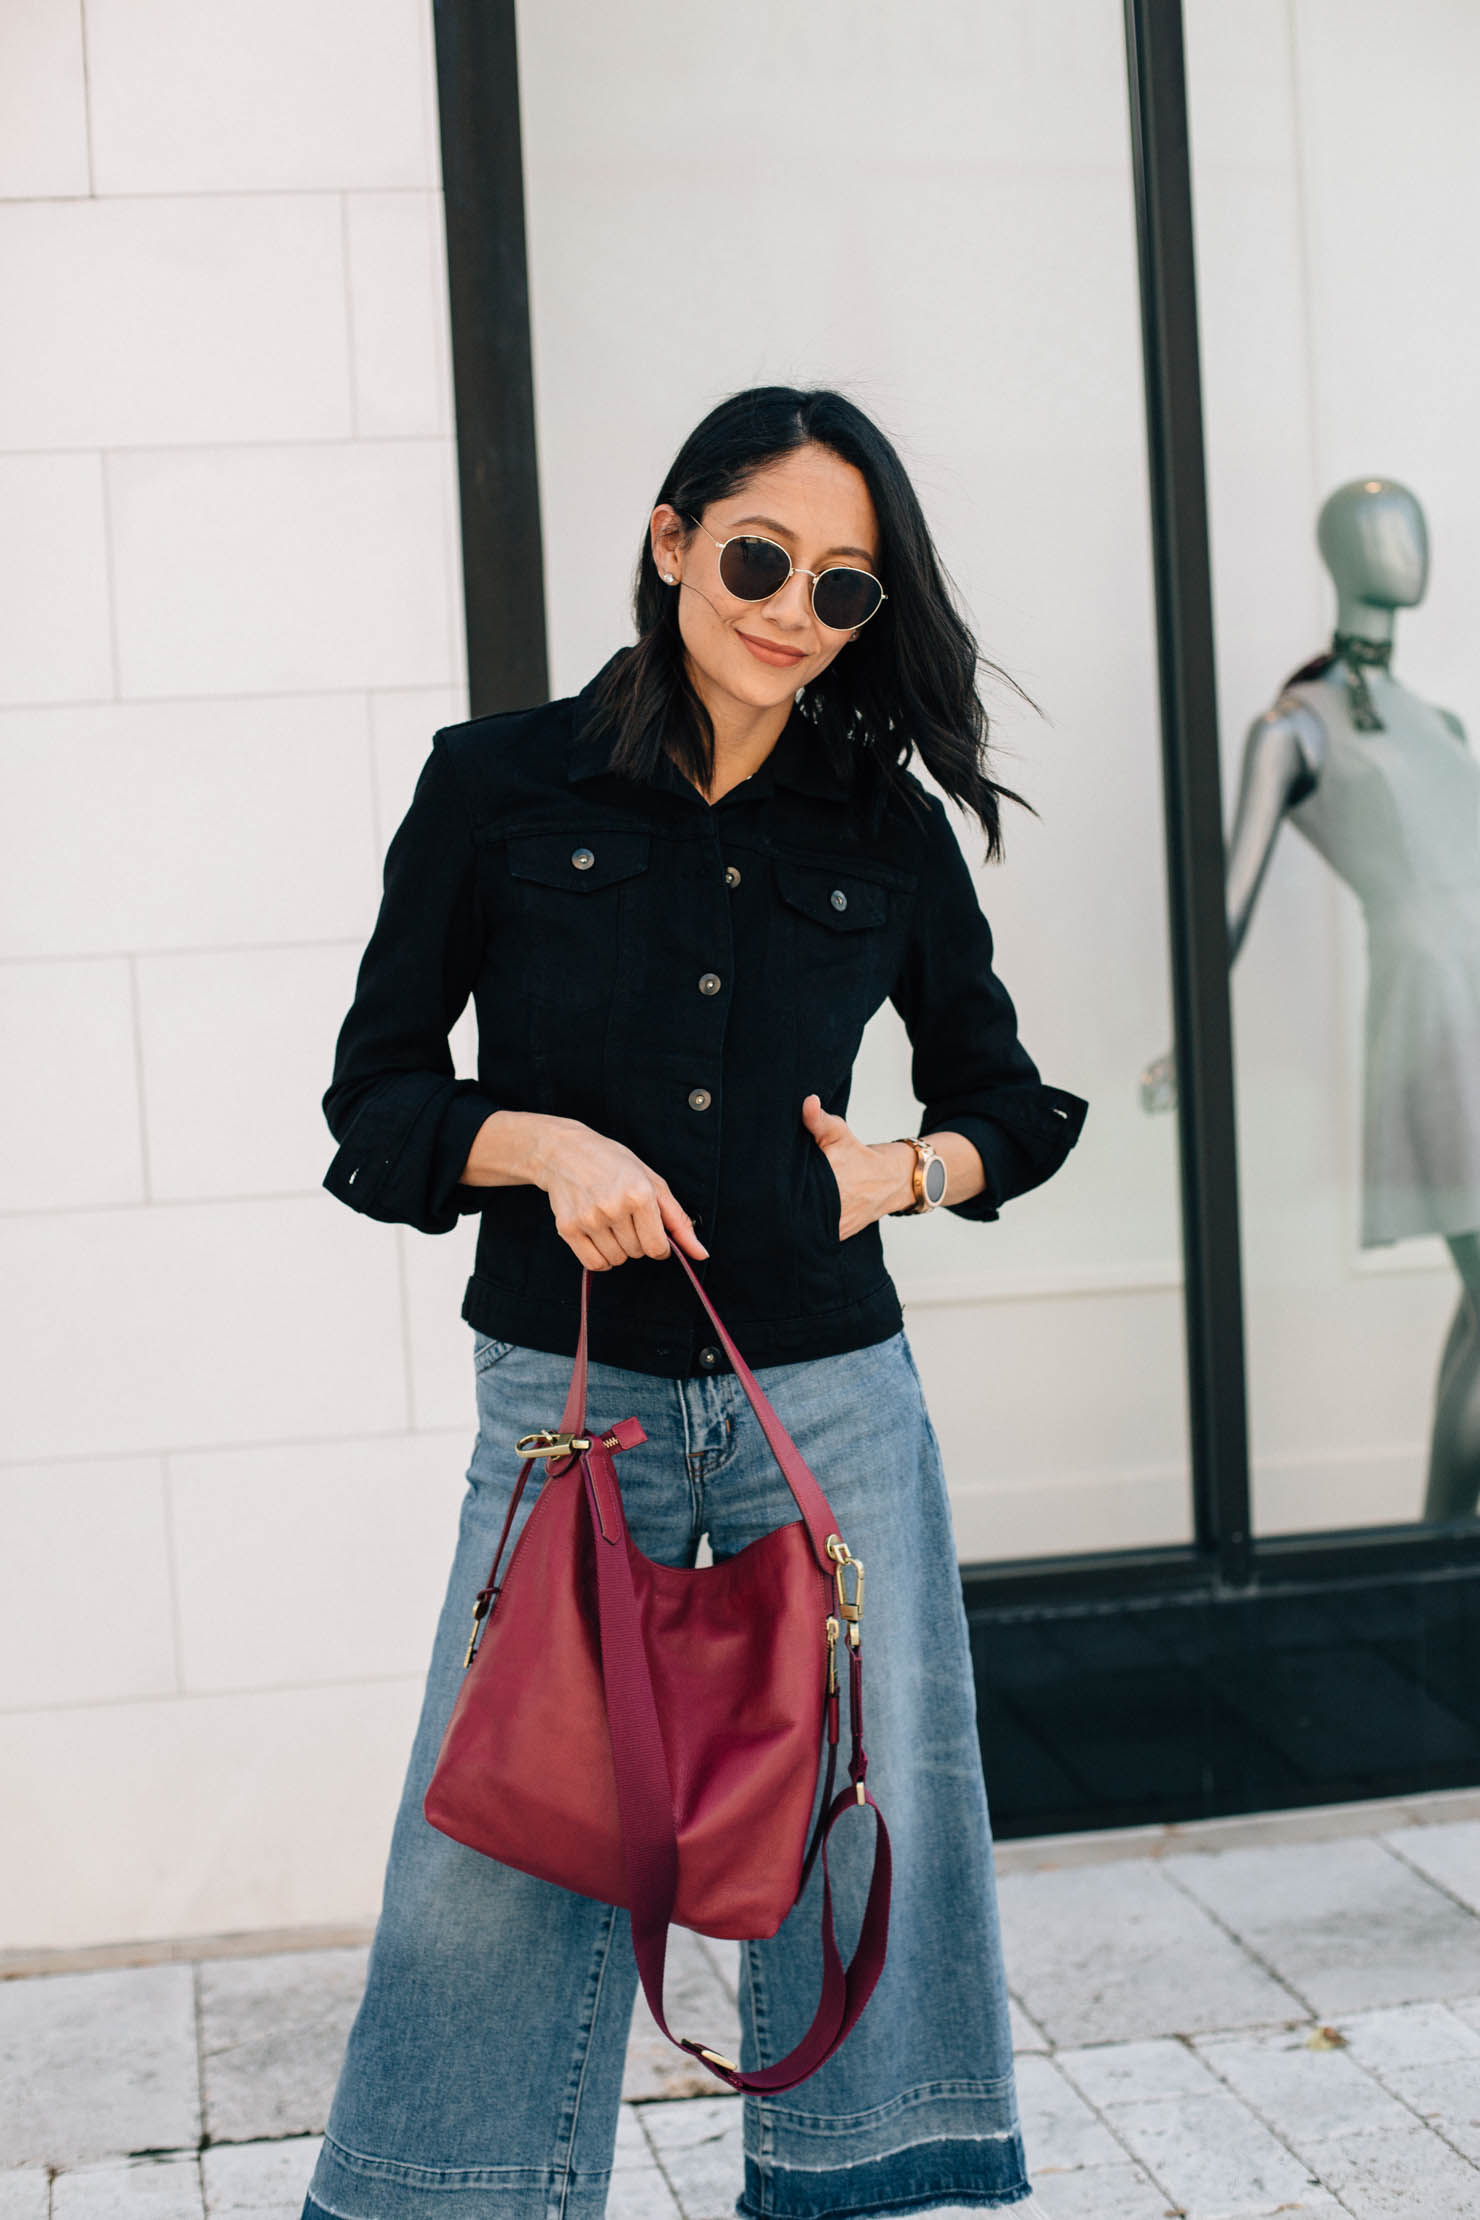 Lifestyle blogger Lilly Beltran wearing a casual fall outfit with a black denim jacket and round sunglasses